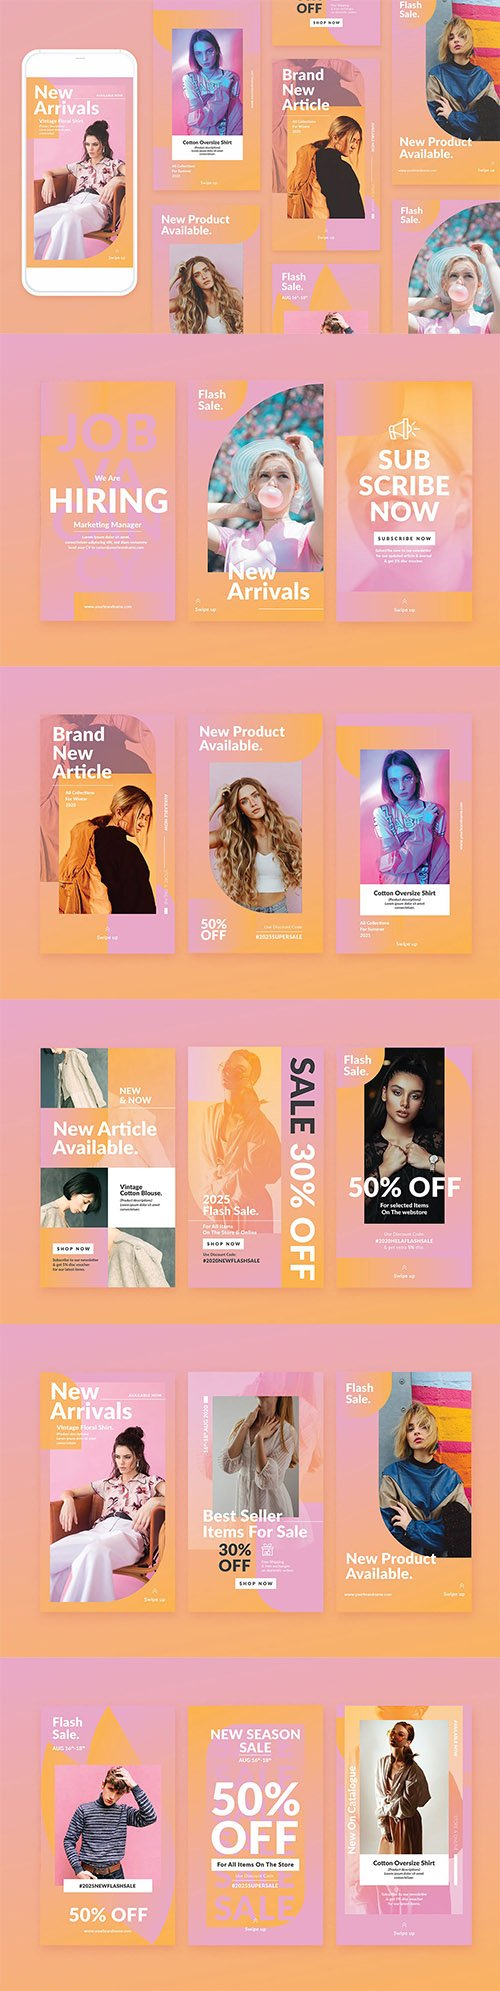 Fashion Instagram Template